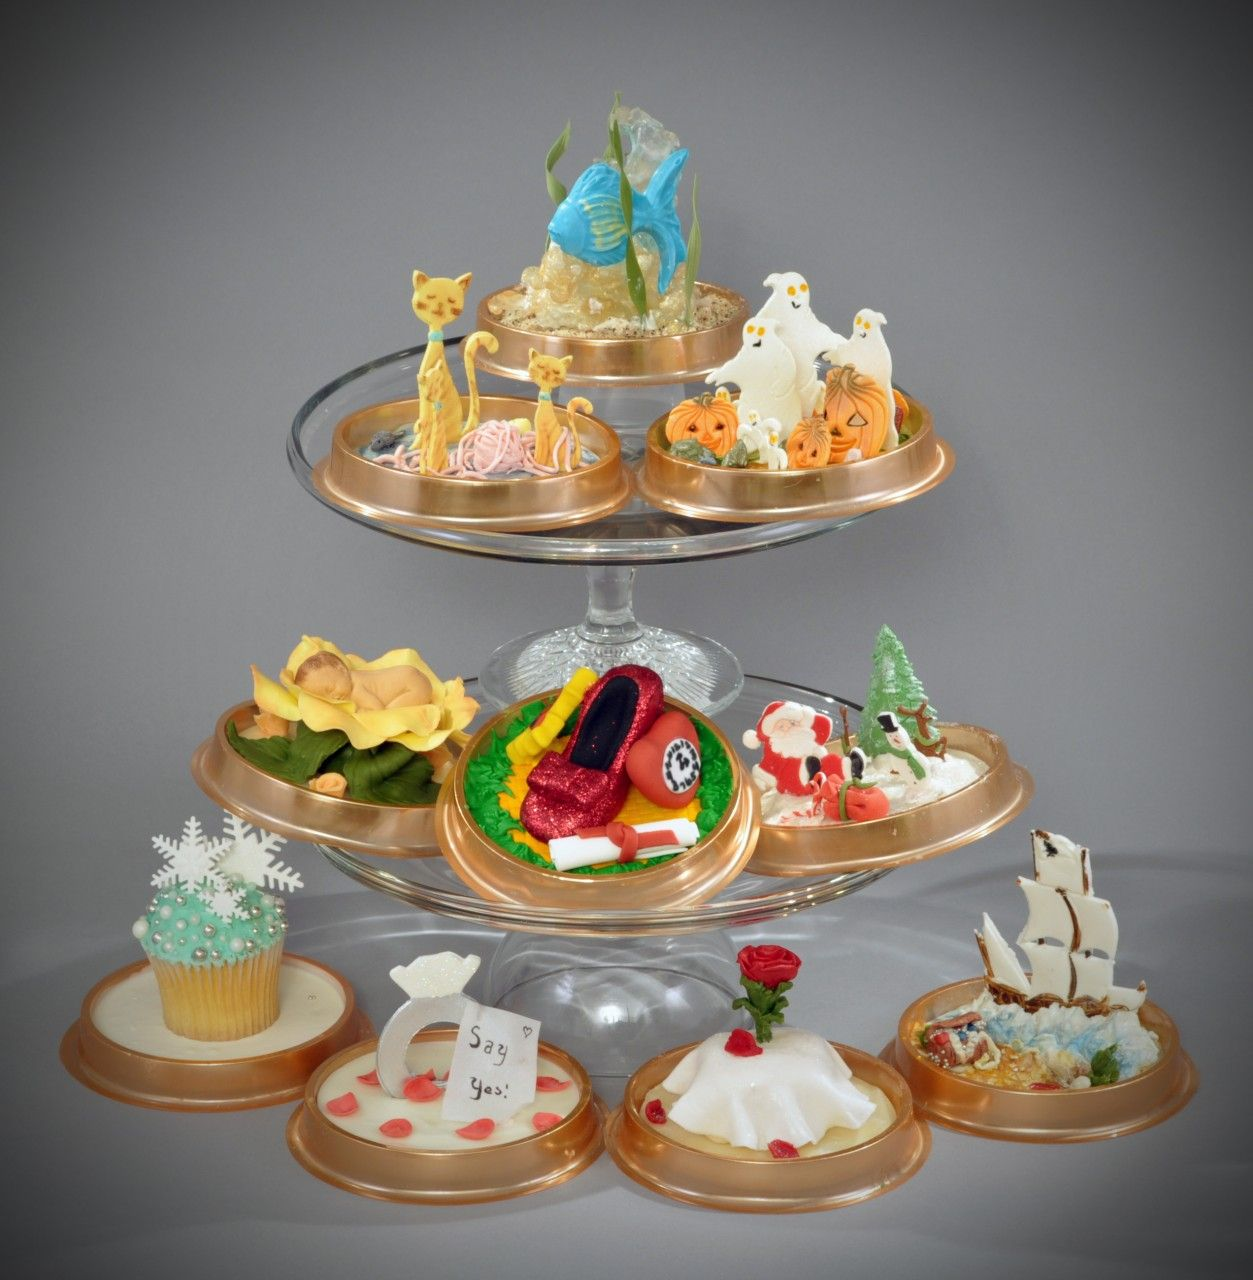 ISAC Ultimate Edible SnowGlobe Competition 20151